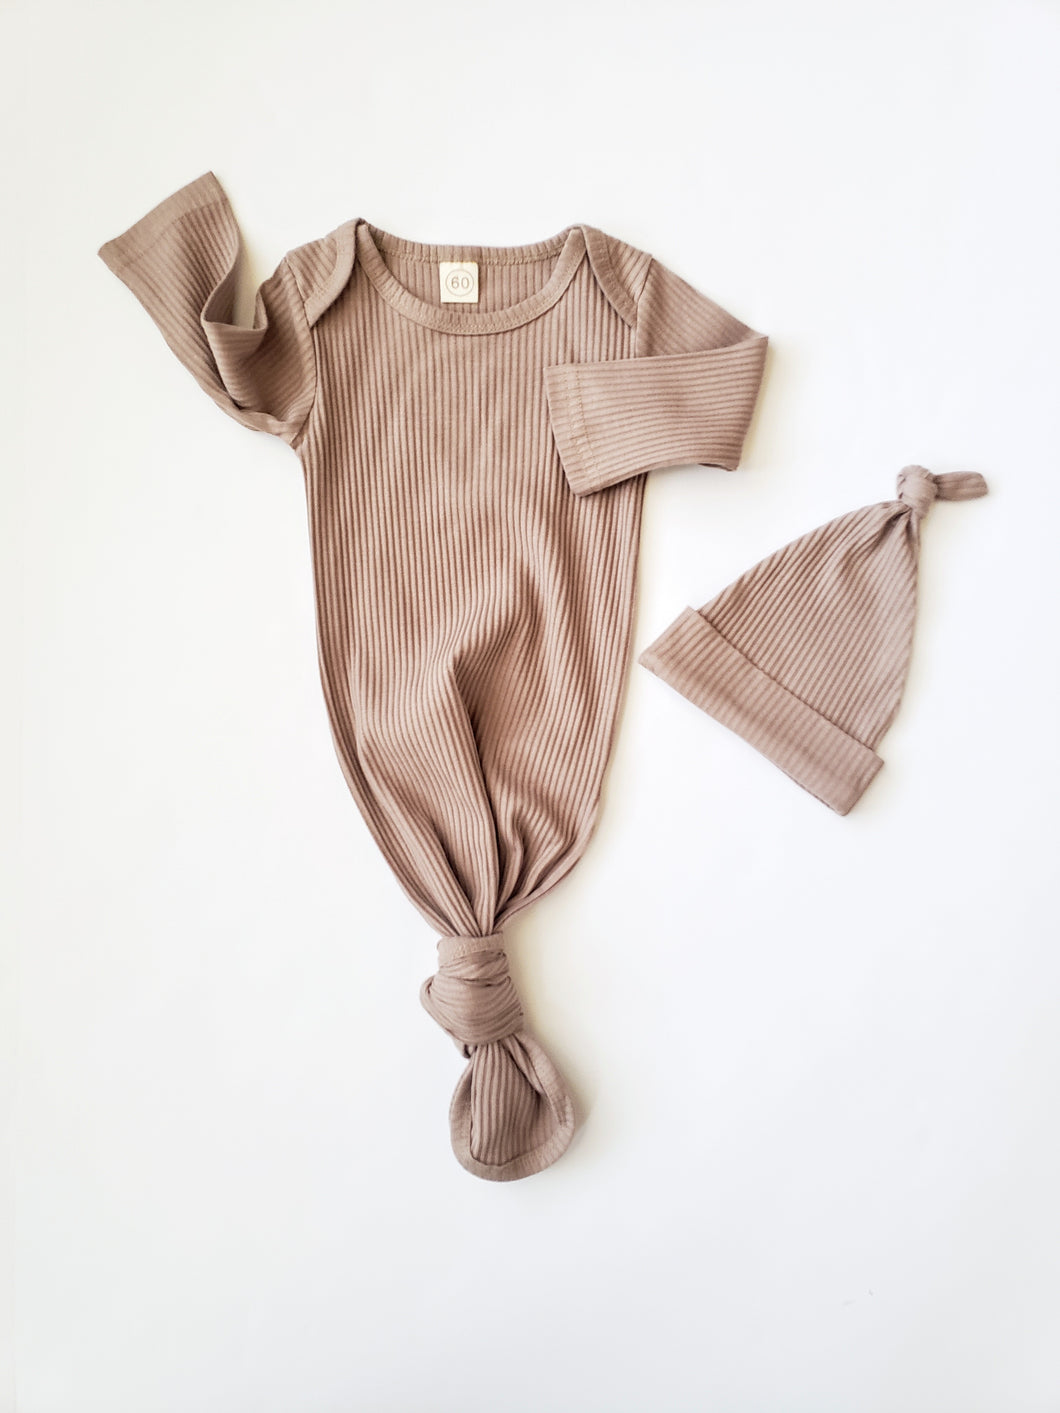 Knotted Baby Gown Set | Ribbed Tan